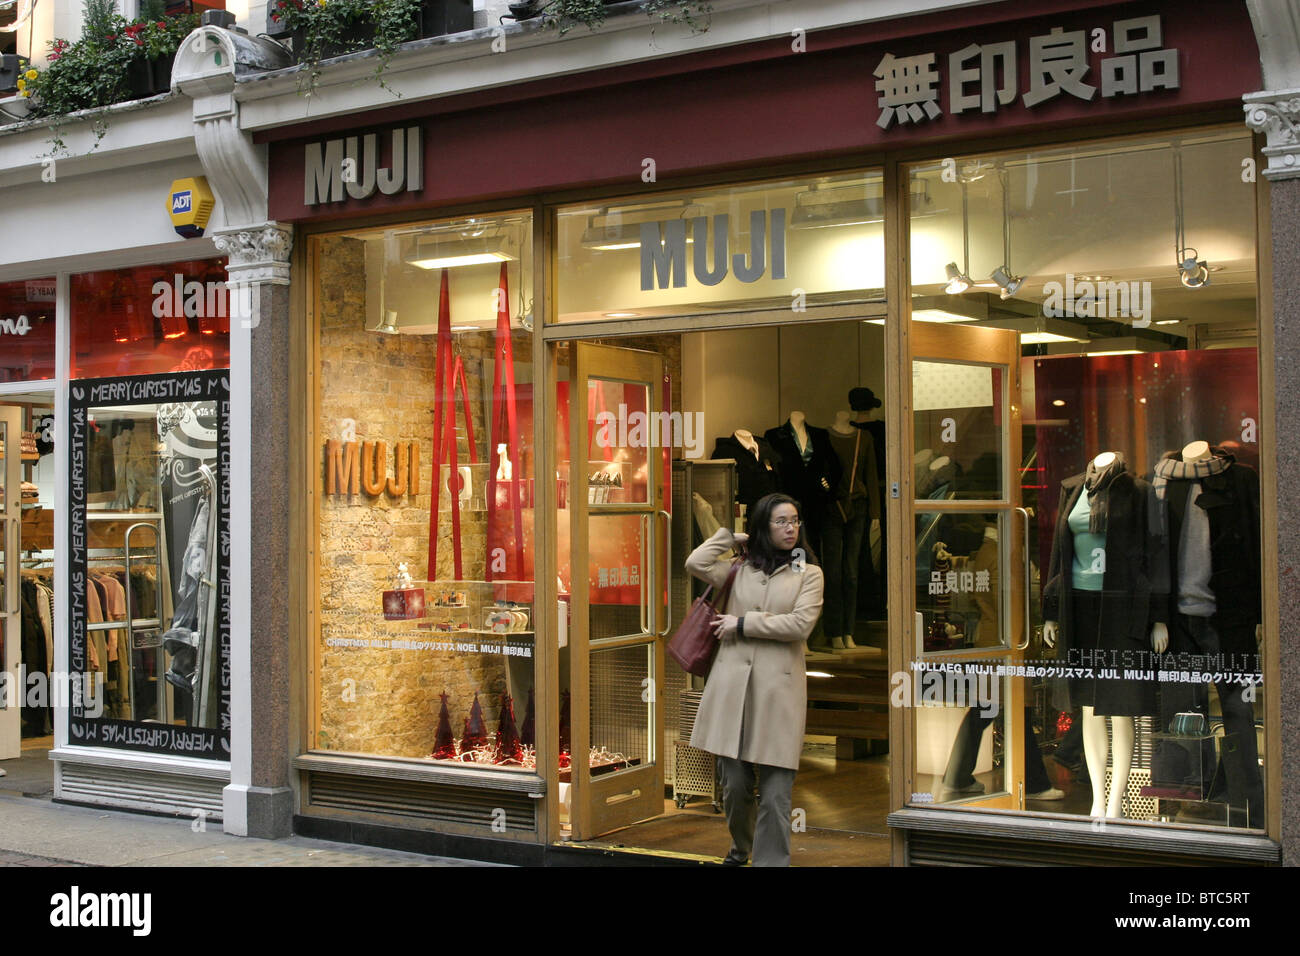 MUJI Store Locator: MUJI has twelve stores throughout the UK. Nine are based in London with the remaining three in Birmingham, Guildford and Manchester. We also have stores in France, Italy, Germany, Spain, Portugal and Sweden, as well as Franchise Stores in Ireland and Poland.